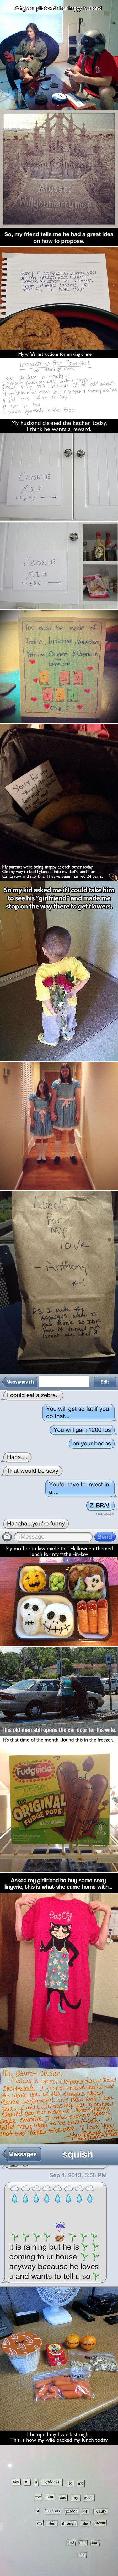 Here are some funny and creative ways that geeky couples express their love.